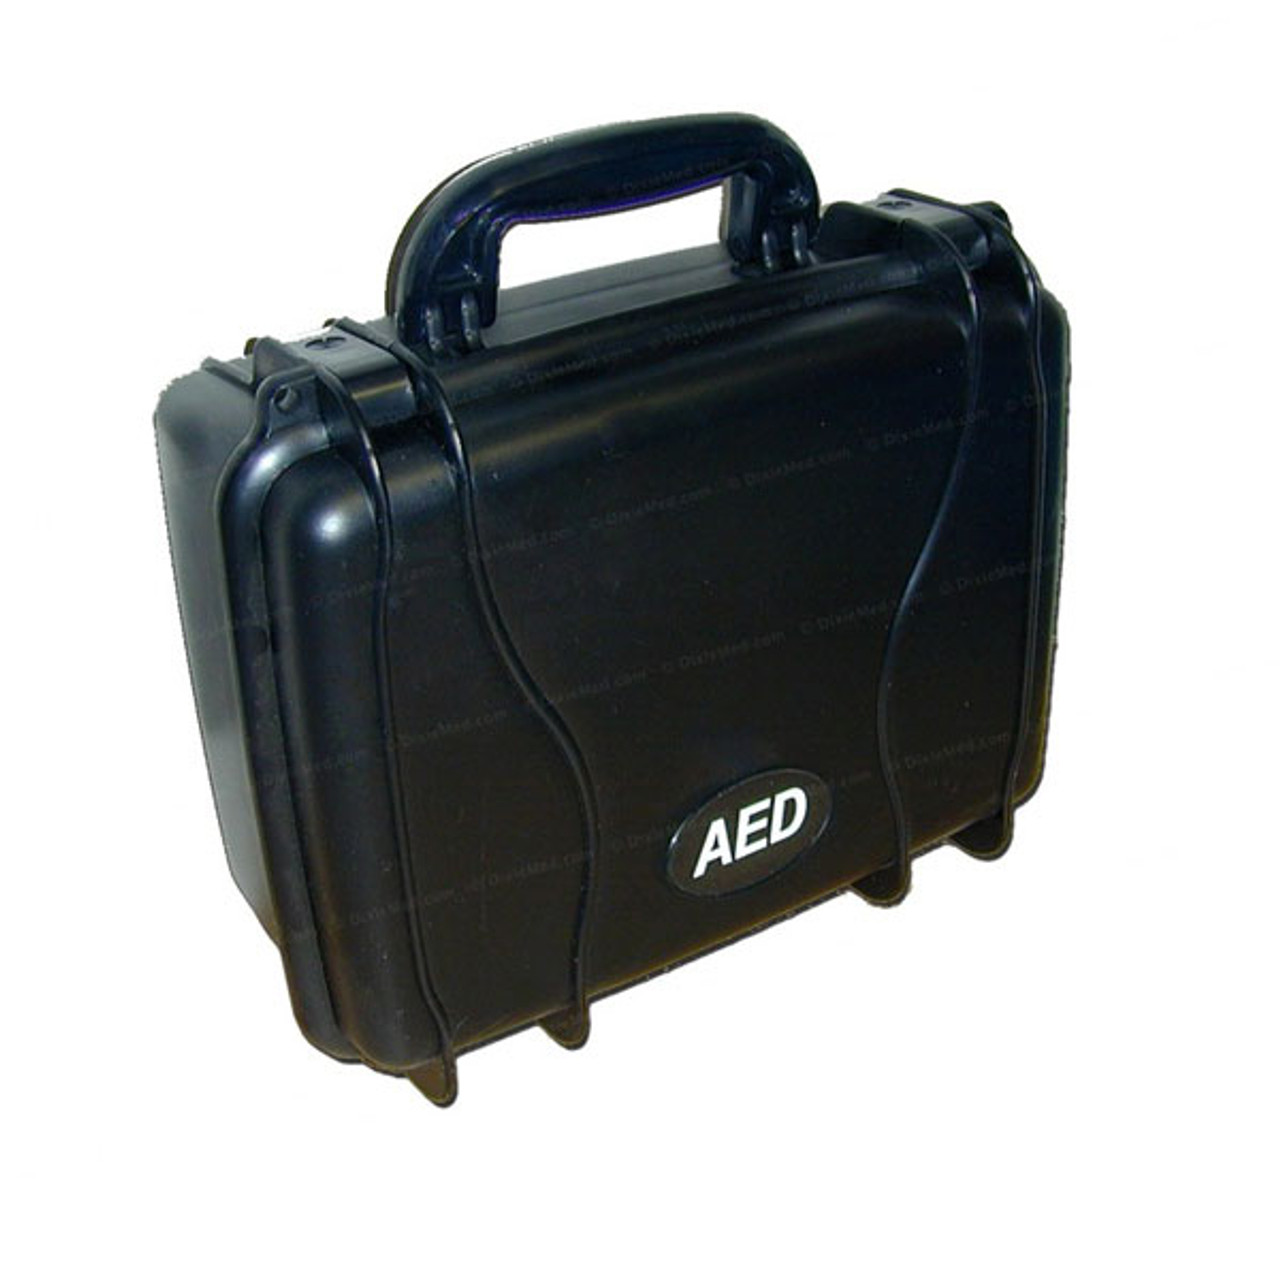 AED Standard Hard Case